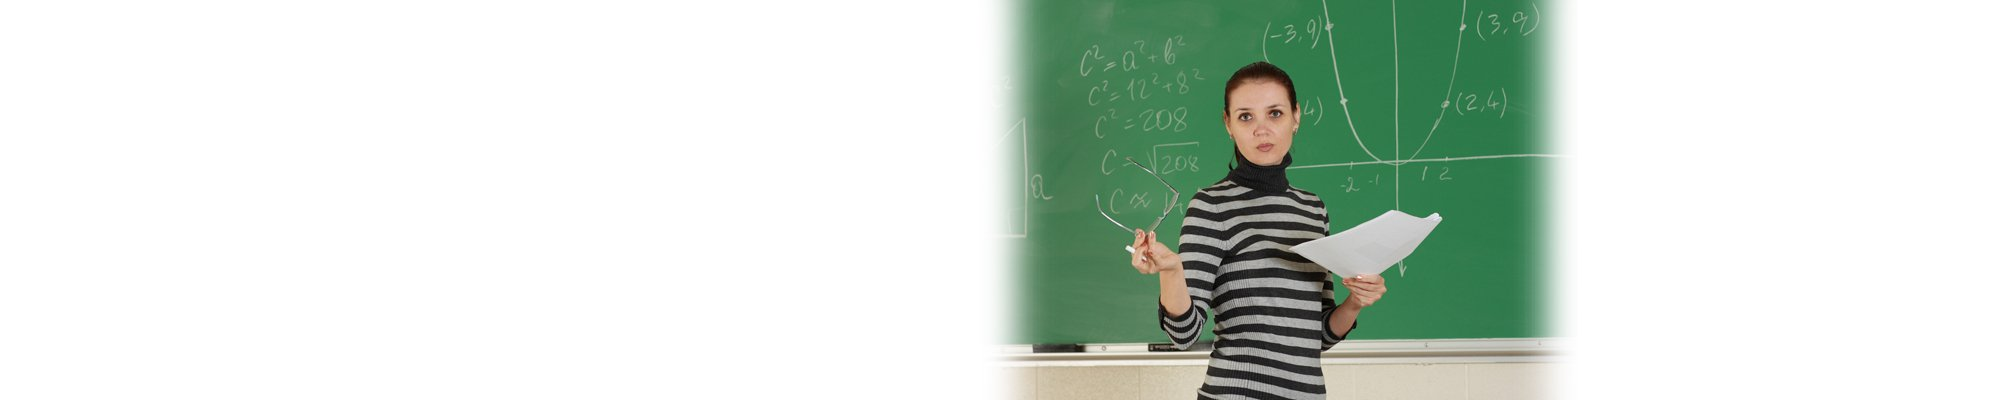 Build Confidence & Reduce Test Anxiety with 1-on-1 in-home Tutoring